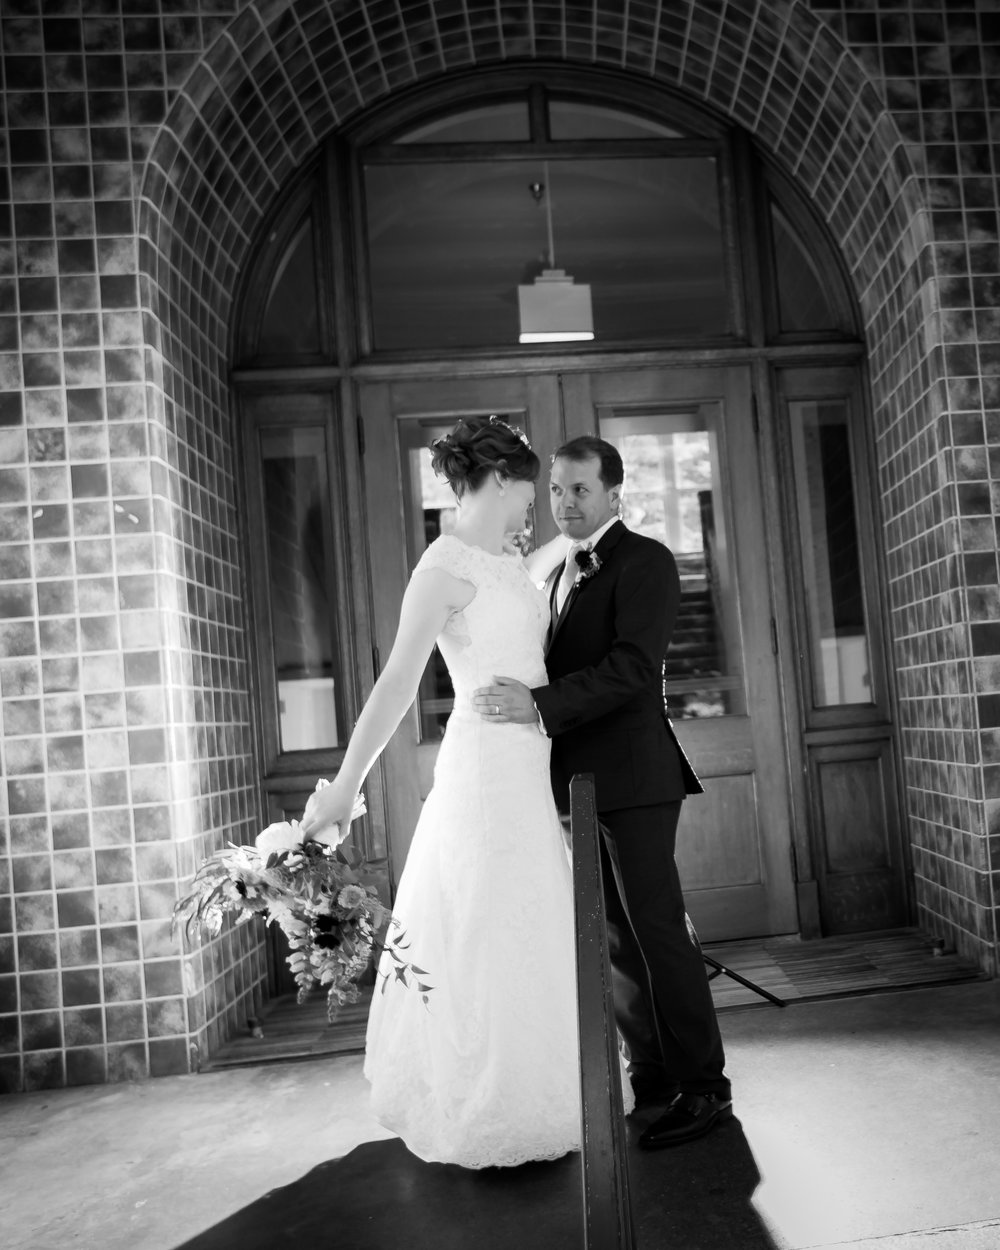 AndrewBrownPhotography-Weddings-60.jpg